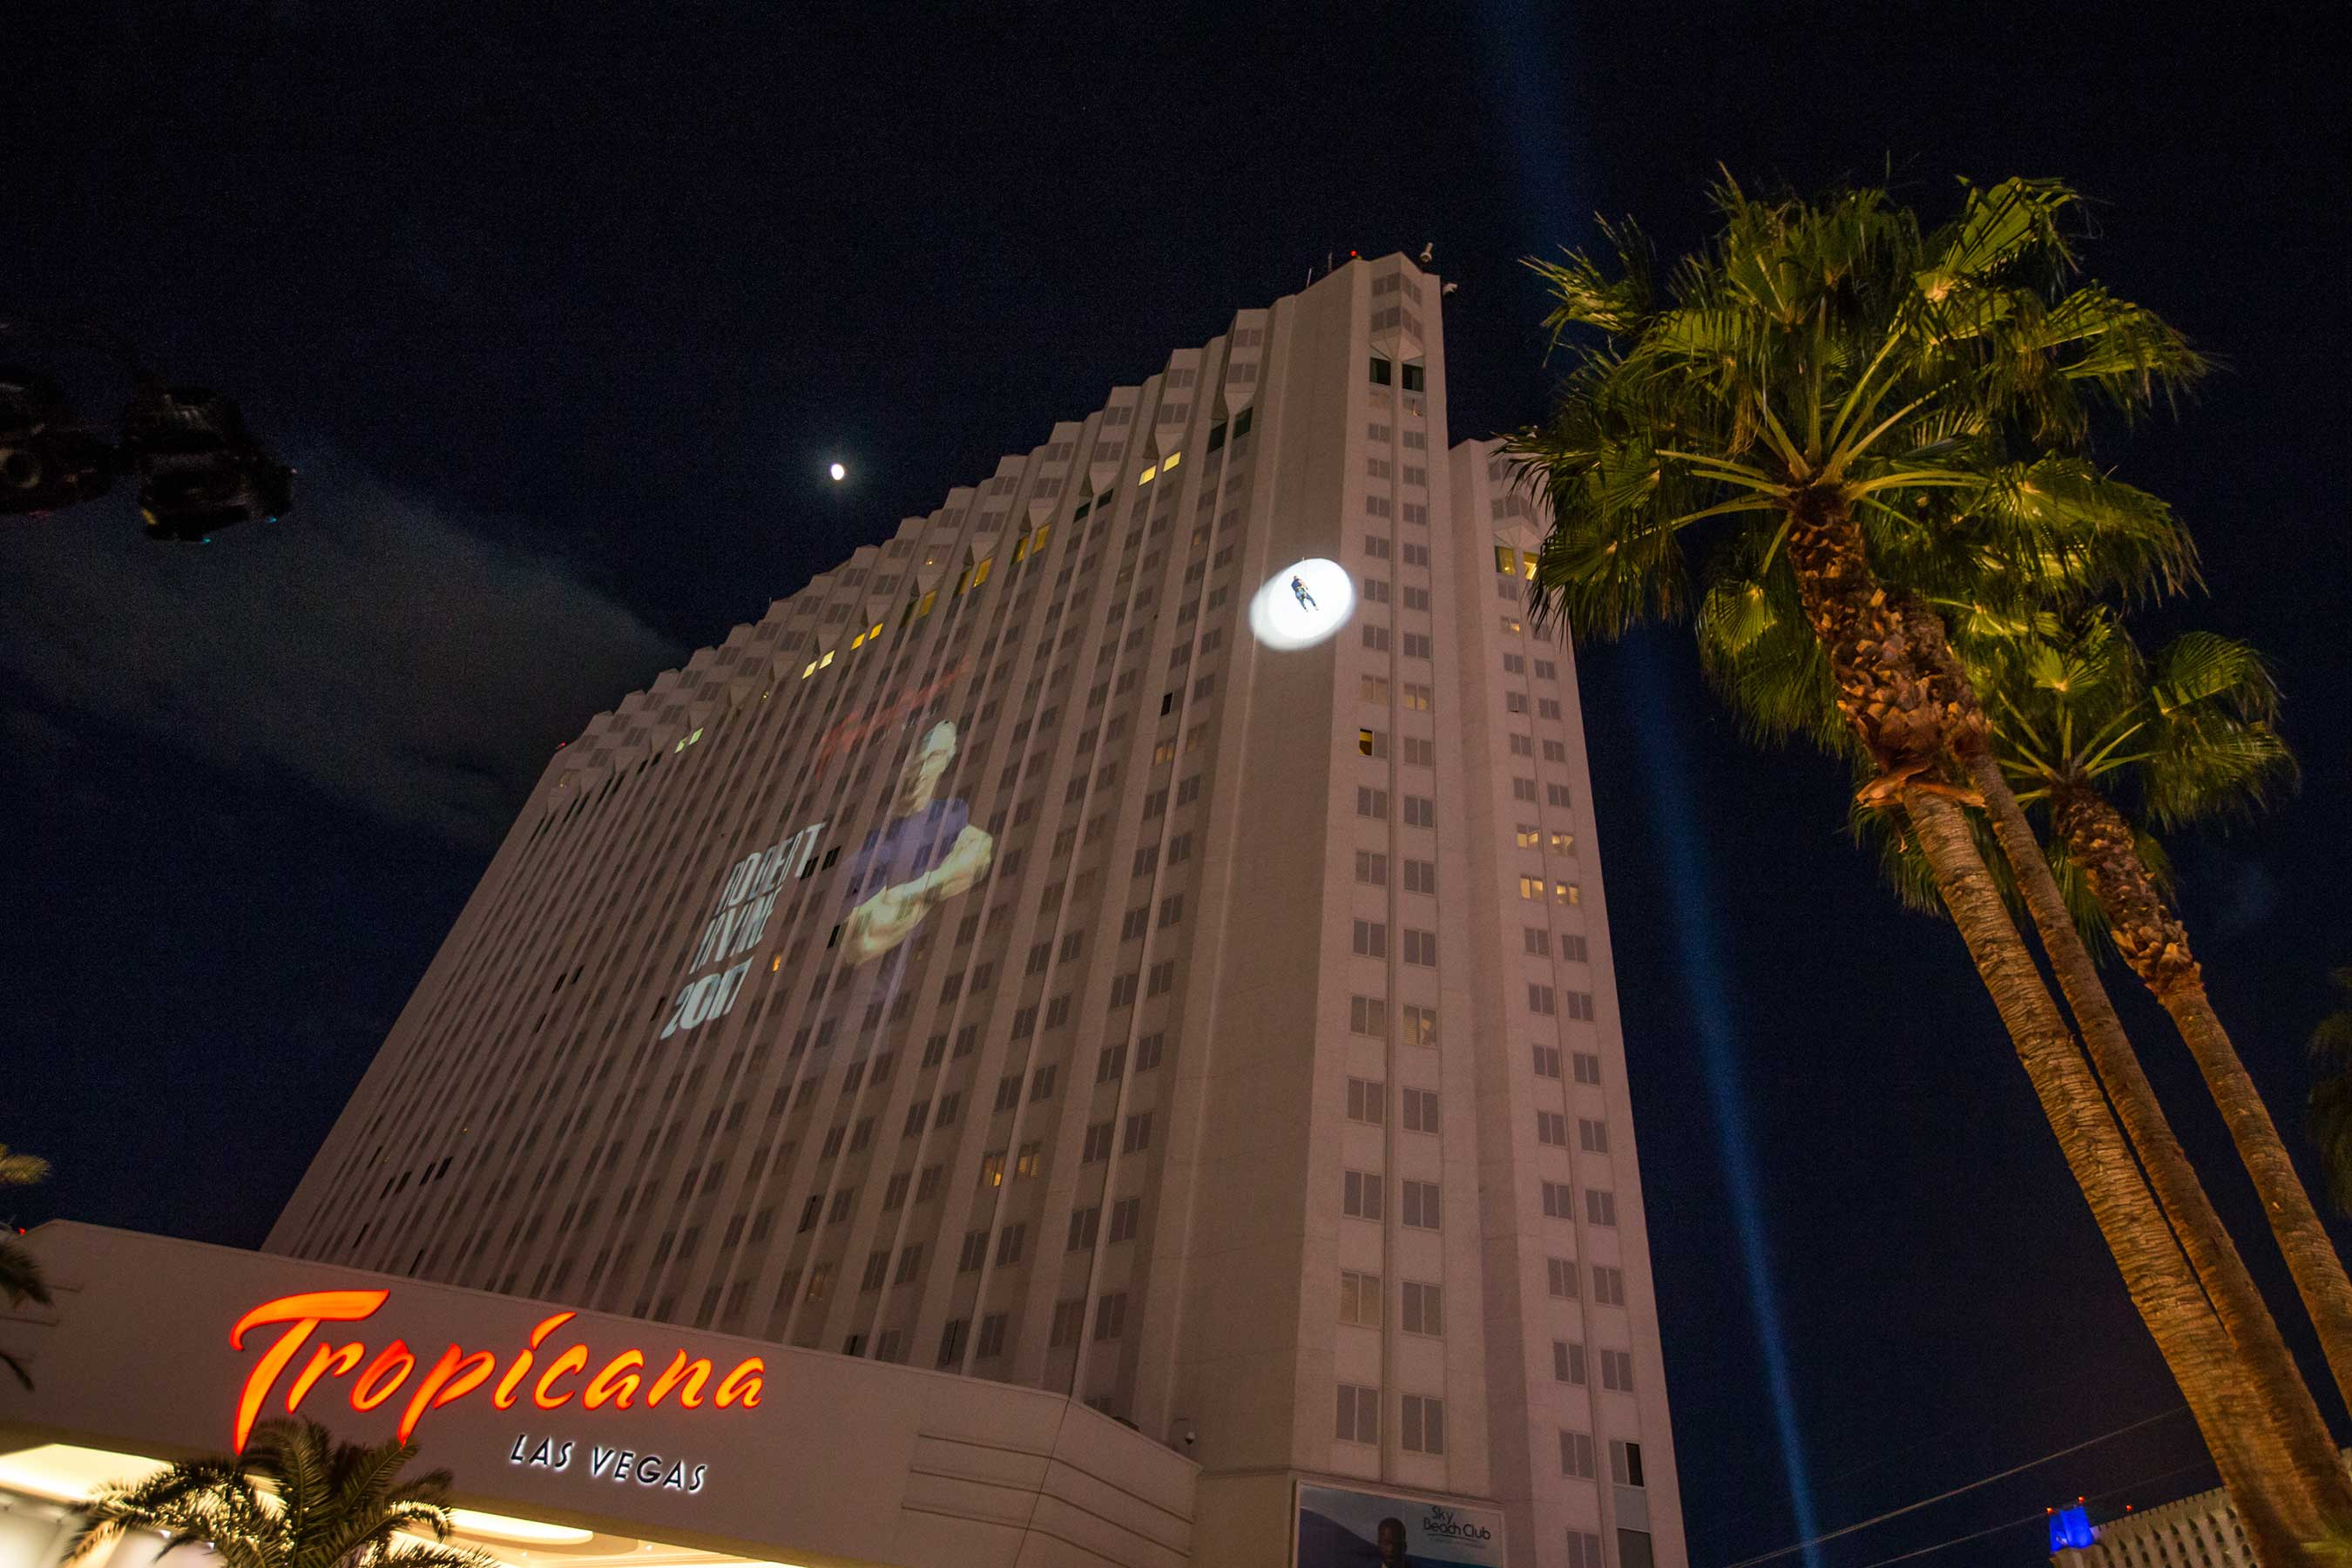 Chef Irvine rappels 22 stories (220 feet) down the exterior of the Tropicana hotel      Credit: Erik Kabik Photography/ MediaPunch